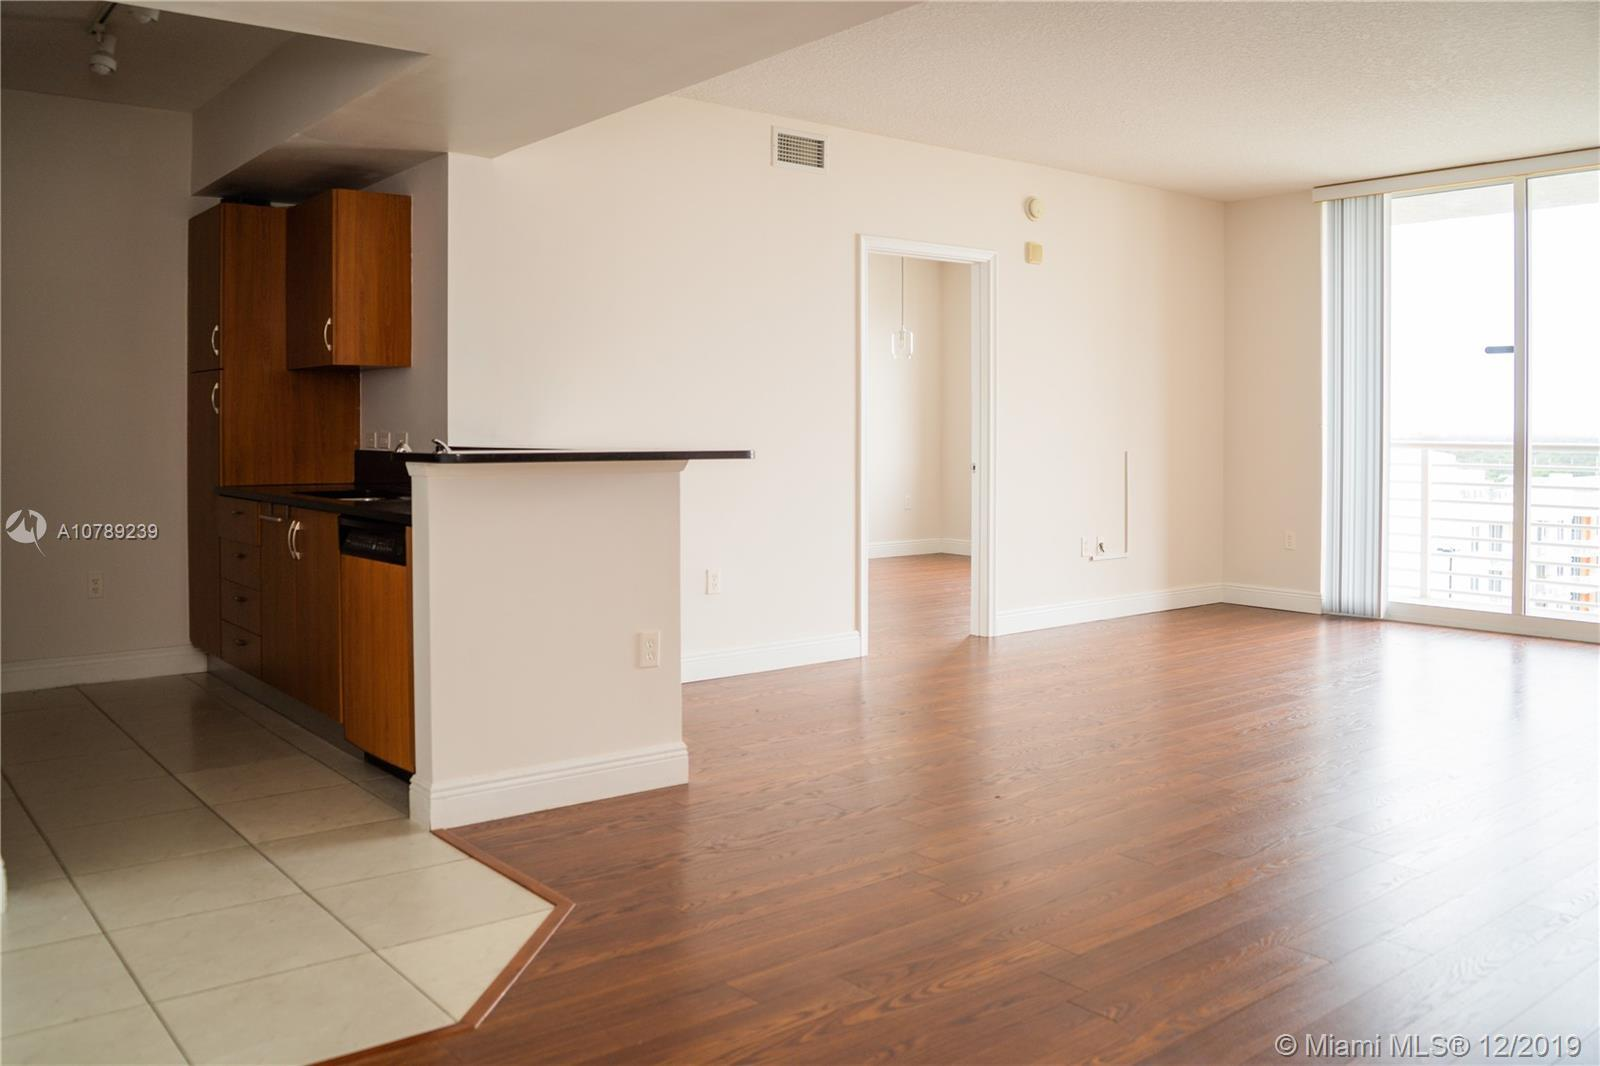 Clean and Ready! 2 bedroom & 2 bathrooms. Sunset Views! This building is a great place to call home